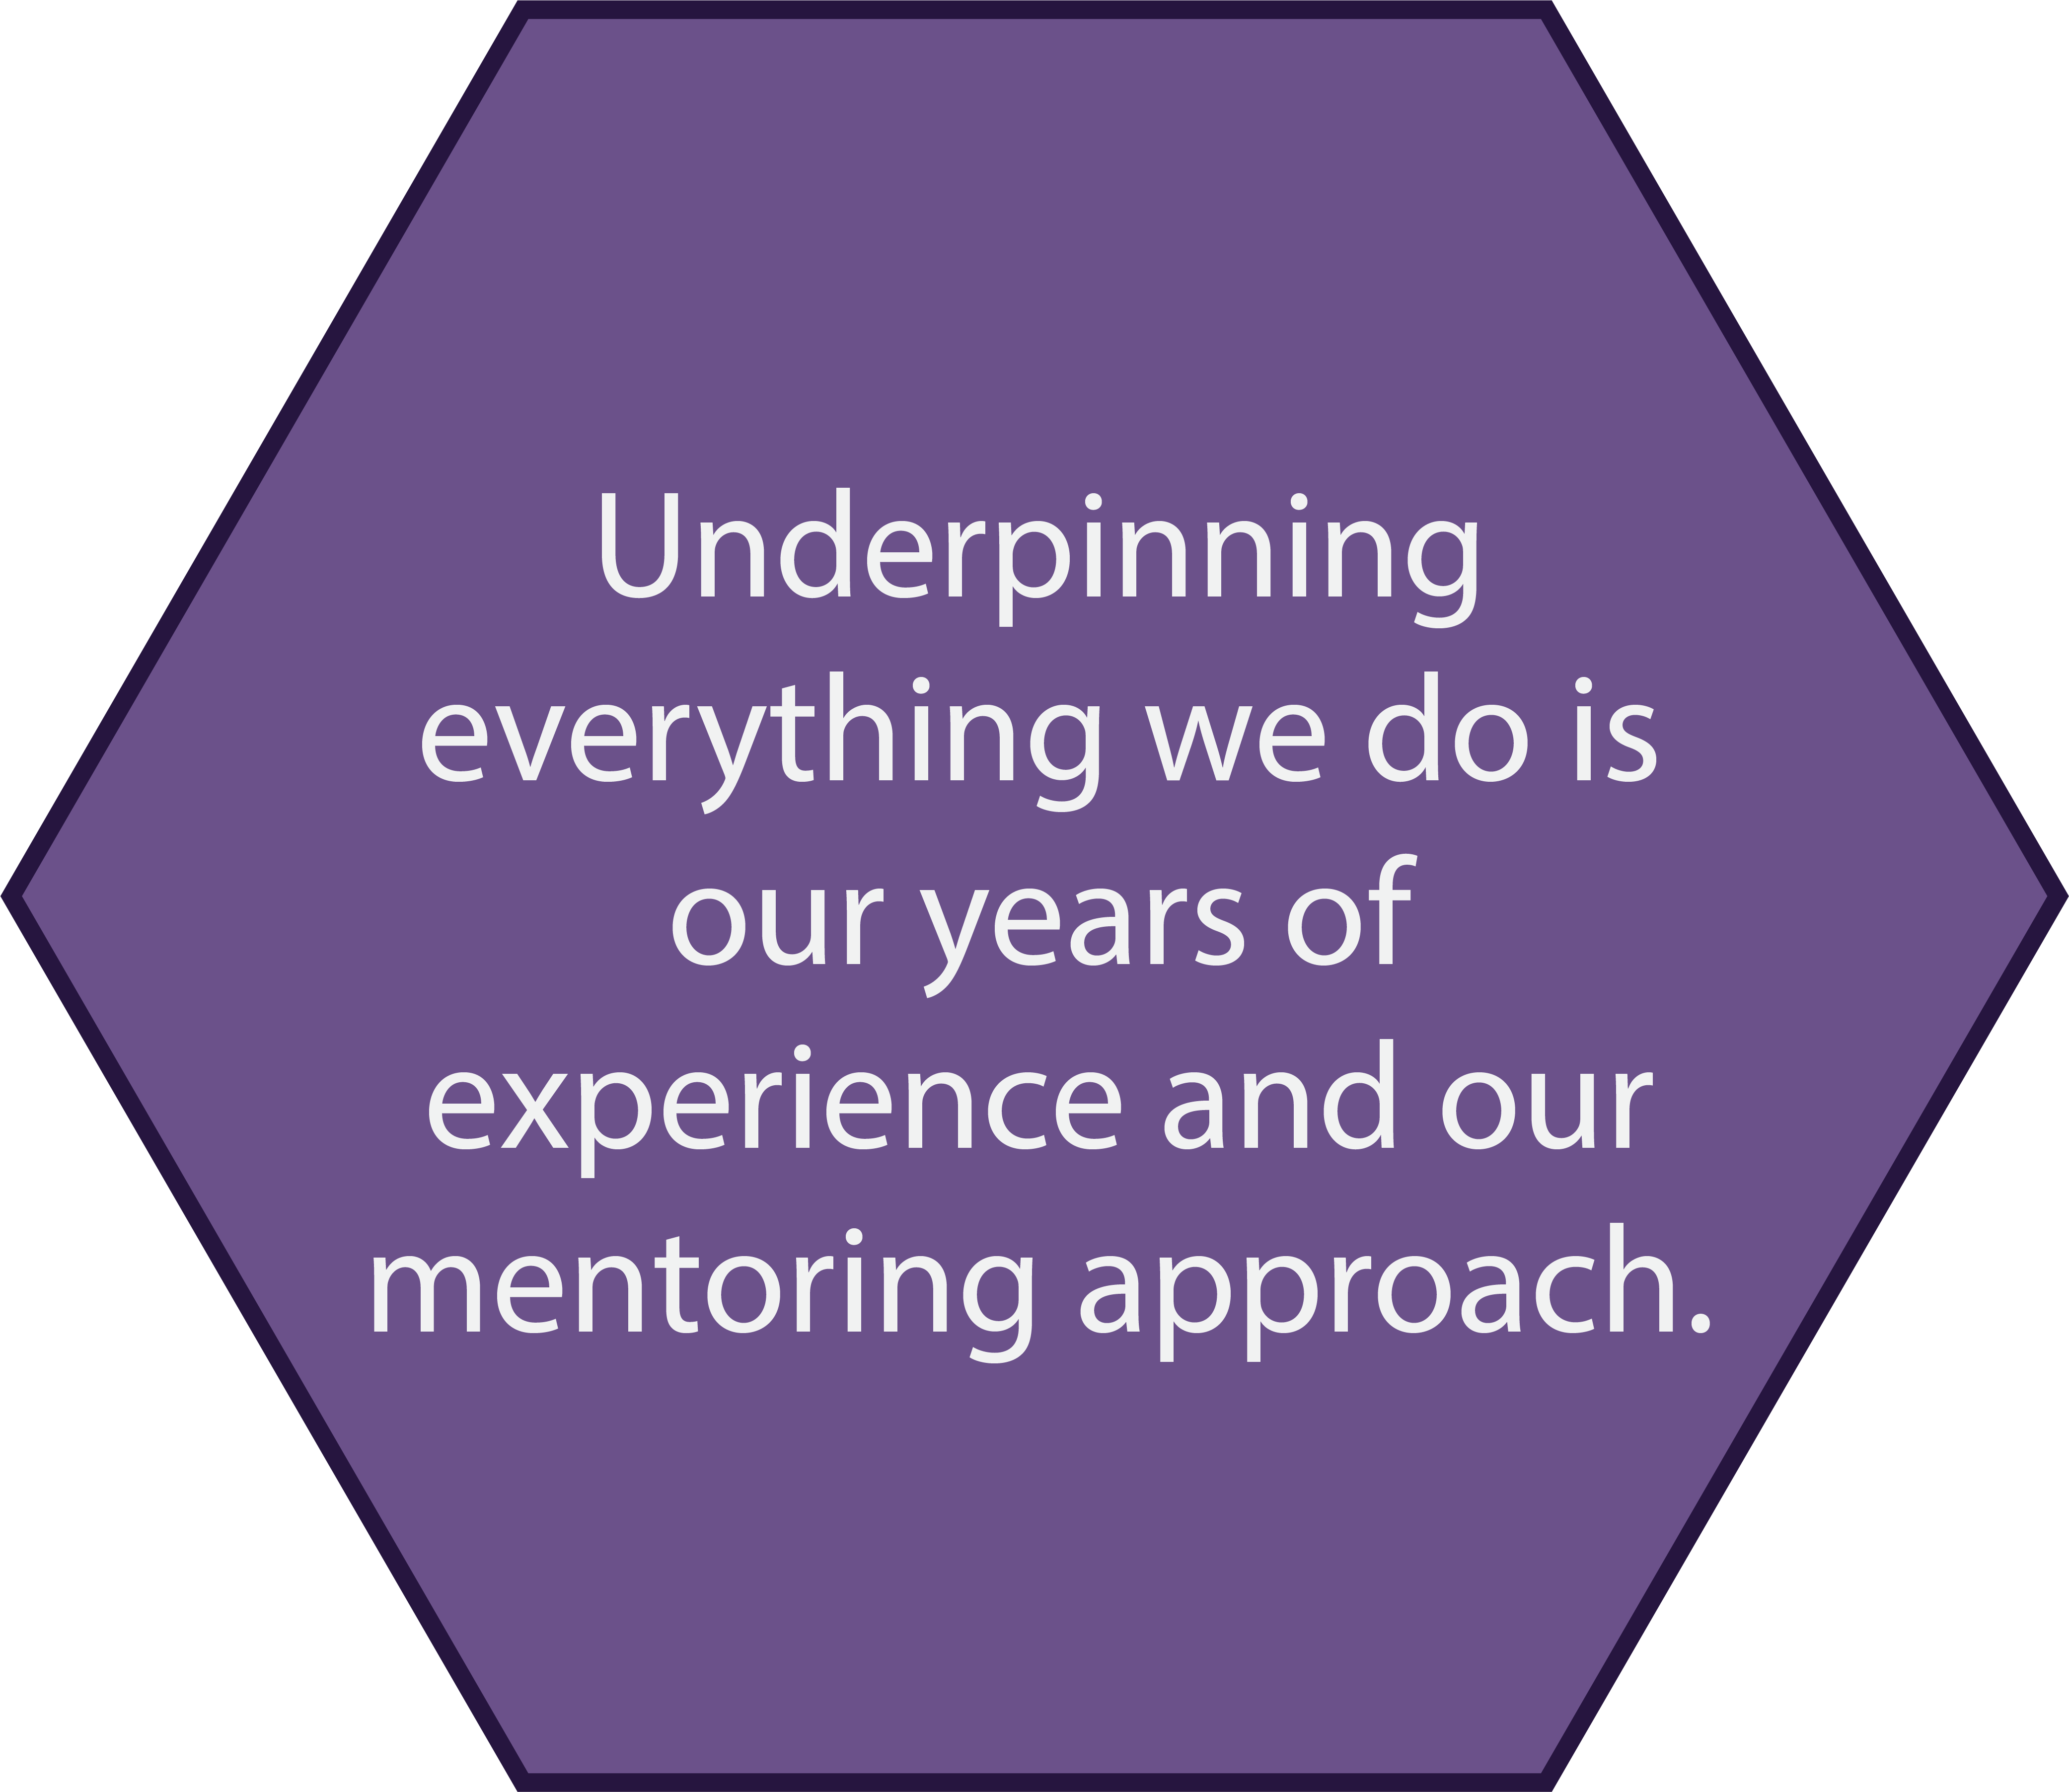 Years of experience and mentoring approach